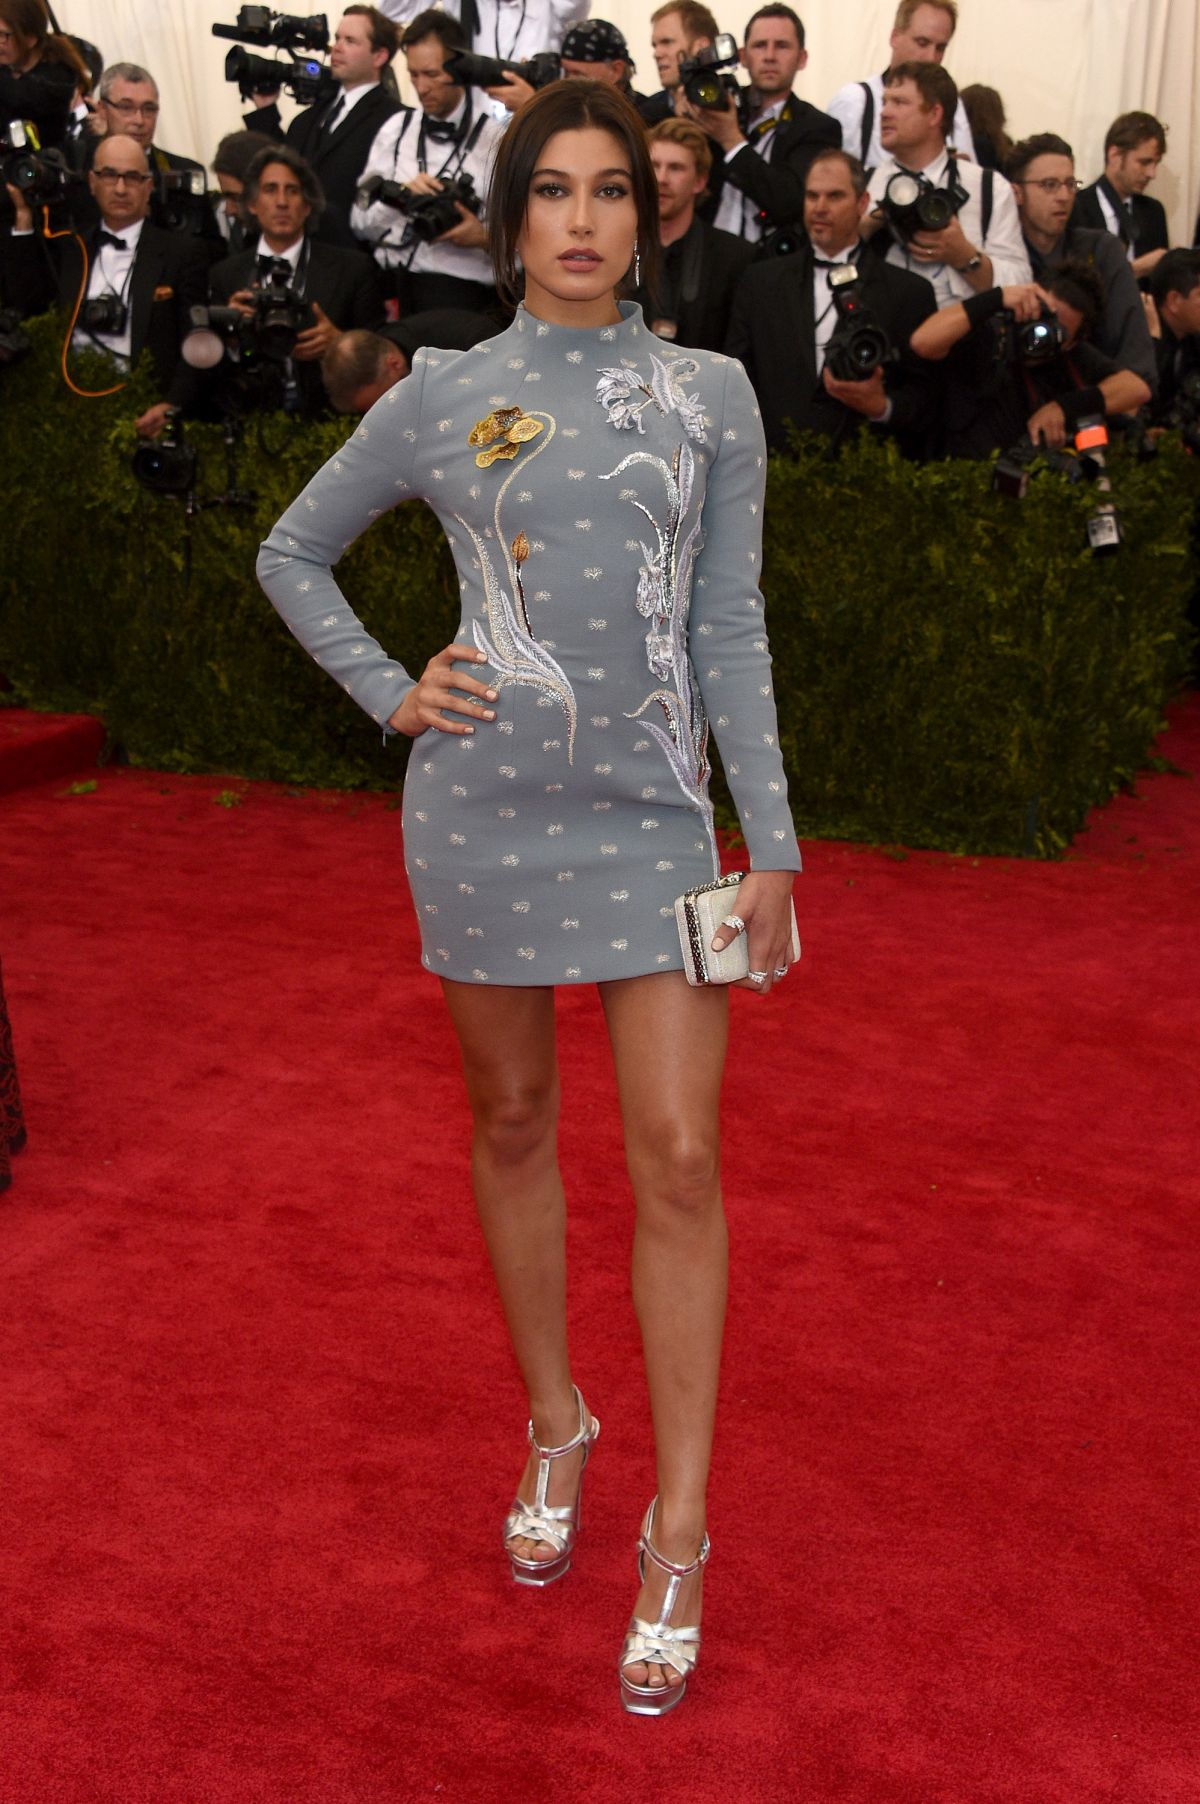 hailey-baldwin-at-met-gala-2015-in-new-york_1